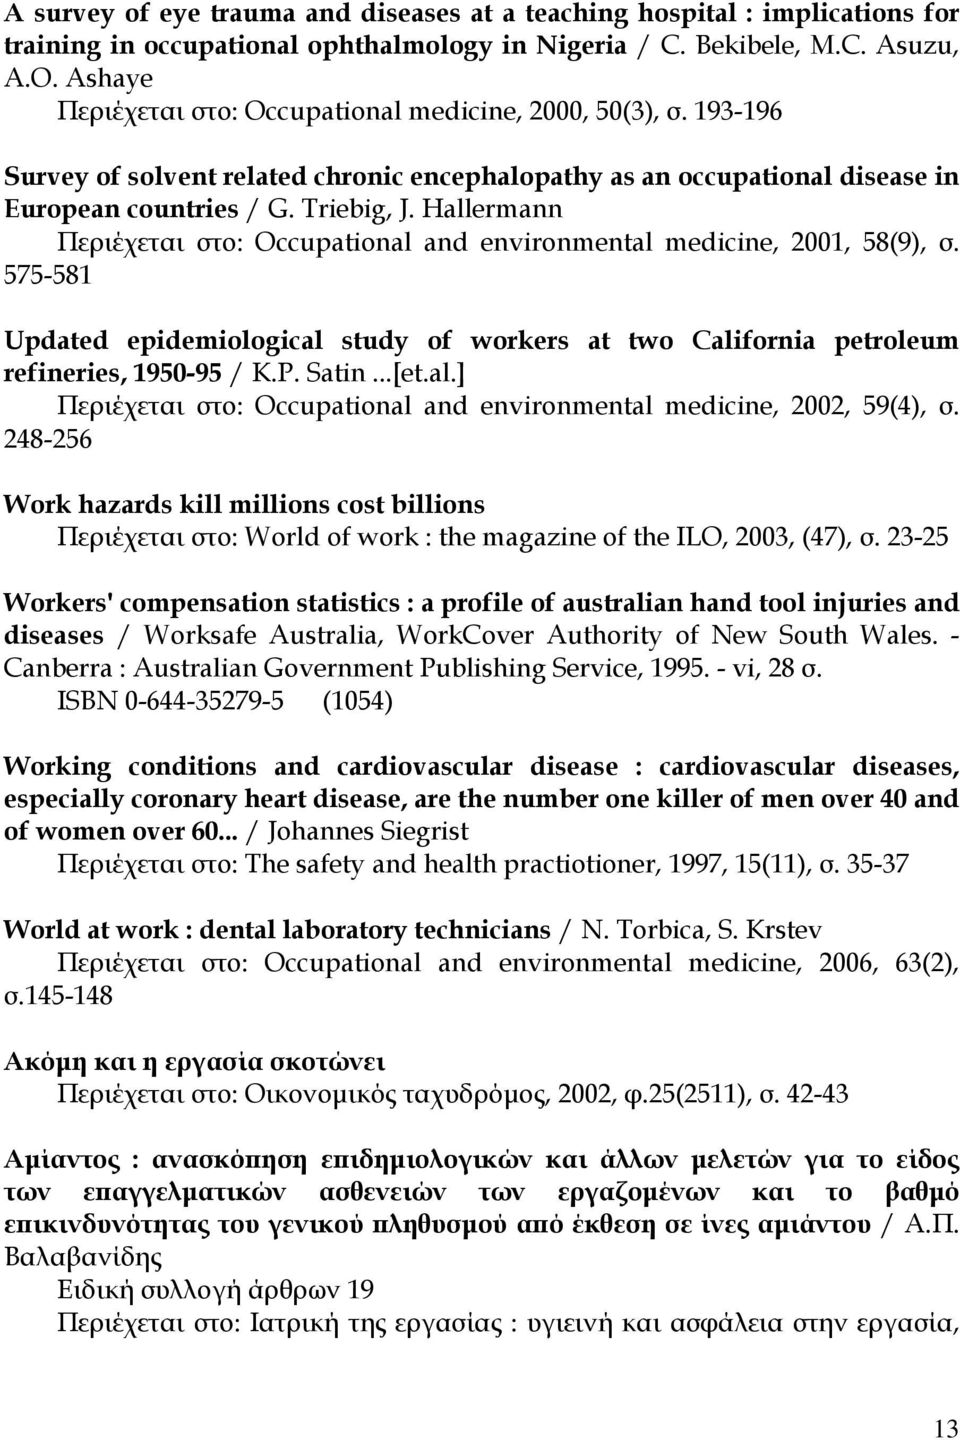 Hallermann Περιέχεται στο: Occupational and environmental medicine, 2001, 58(9), σ. 575-581 Updated epidemiological study of workers at two California petroleum refineries, 1950-95 / K.P. Satin...[et.